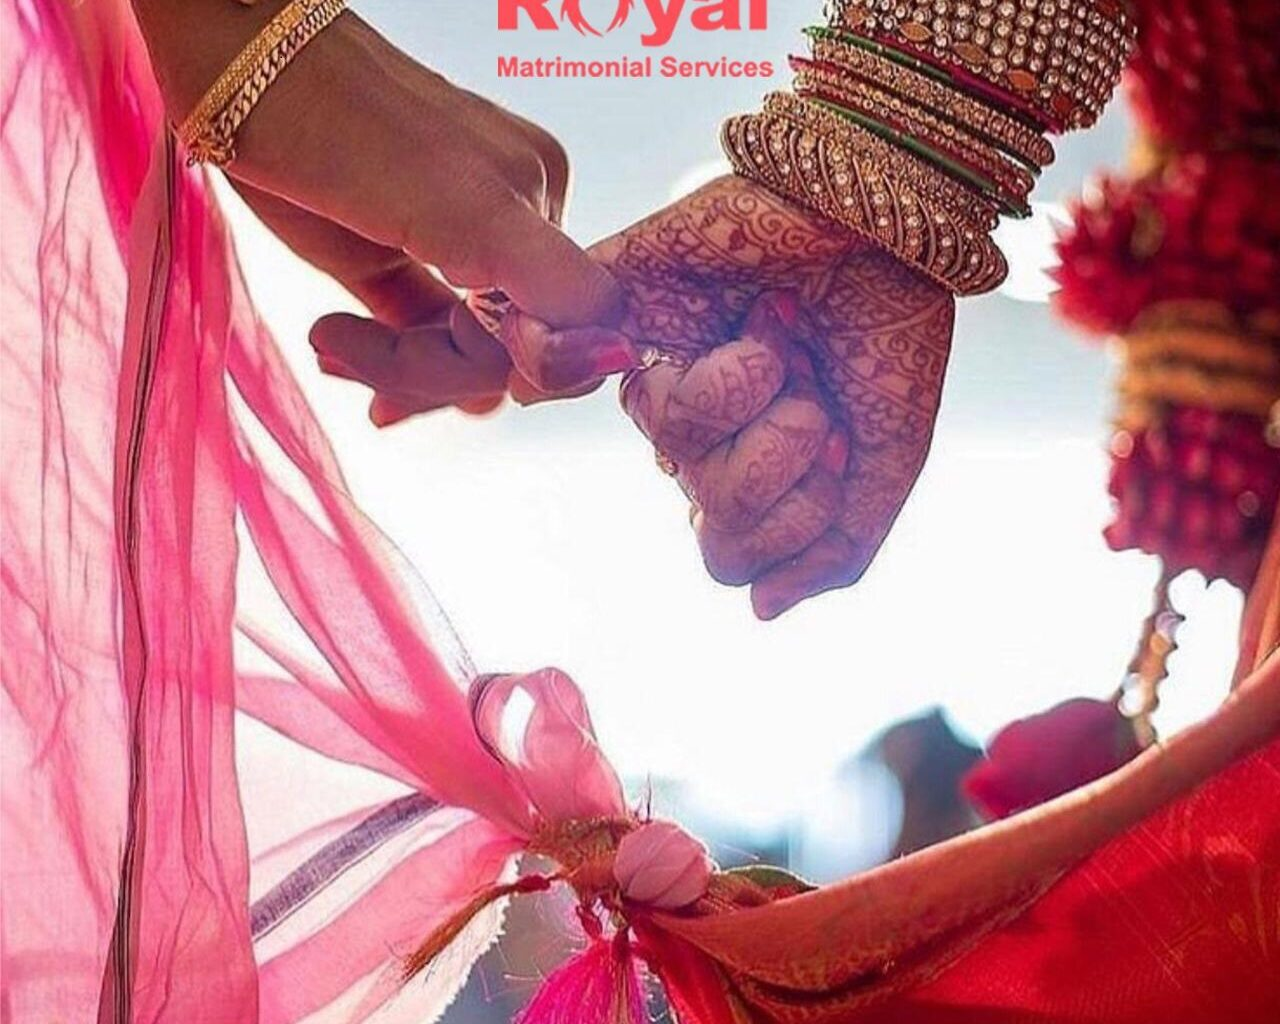 Royal Matrimonial Top Signs Someone is About To Break Up With You